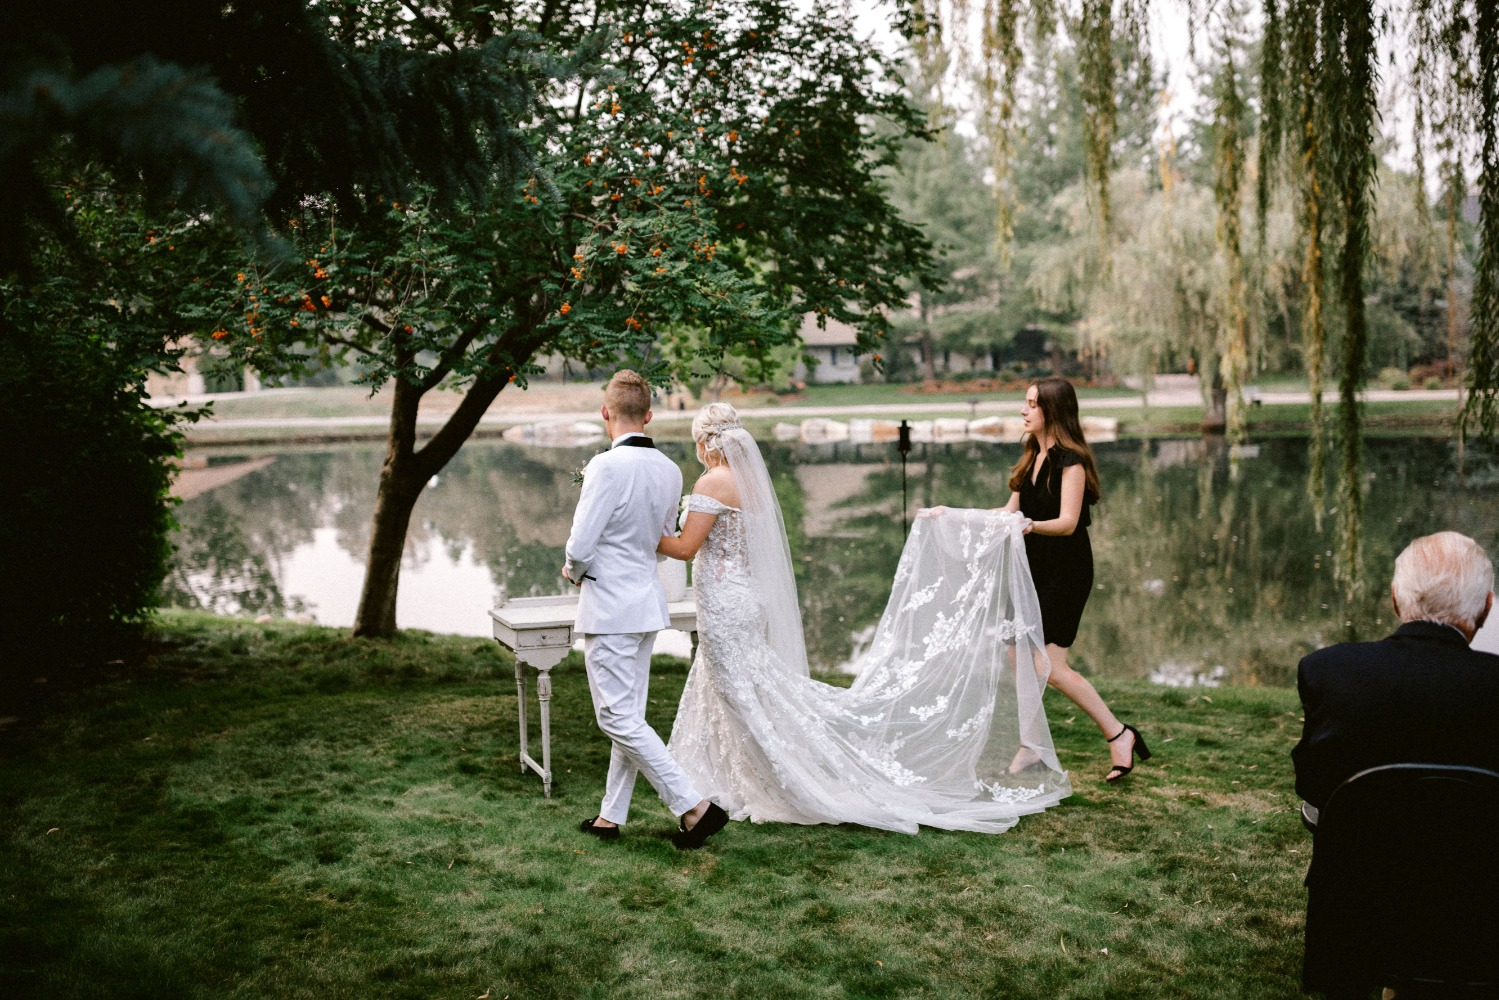 Glamorous Backyard Wedding in Boise, Idaho